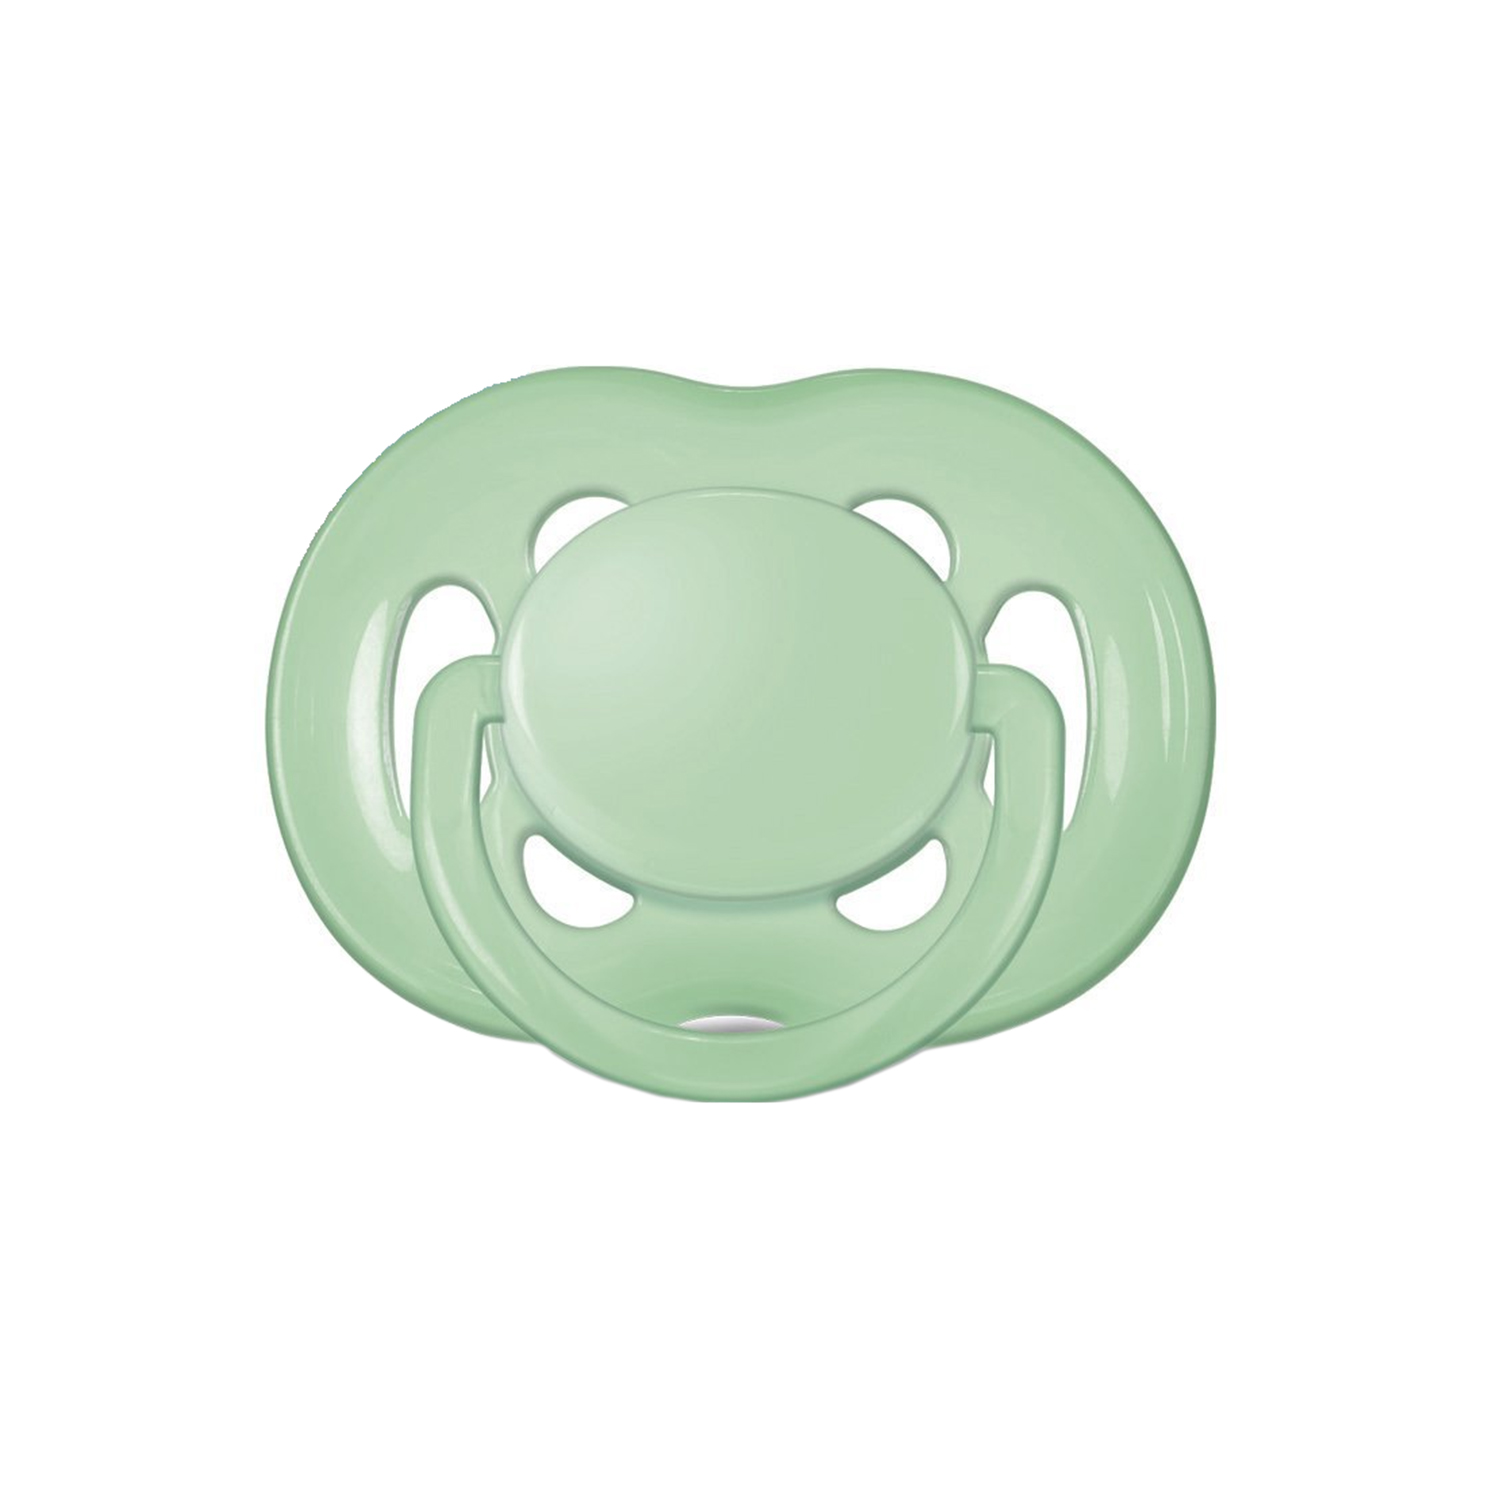 Avent Scf178/14 Soother 6 - 18 Months